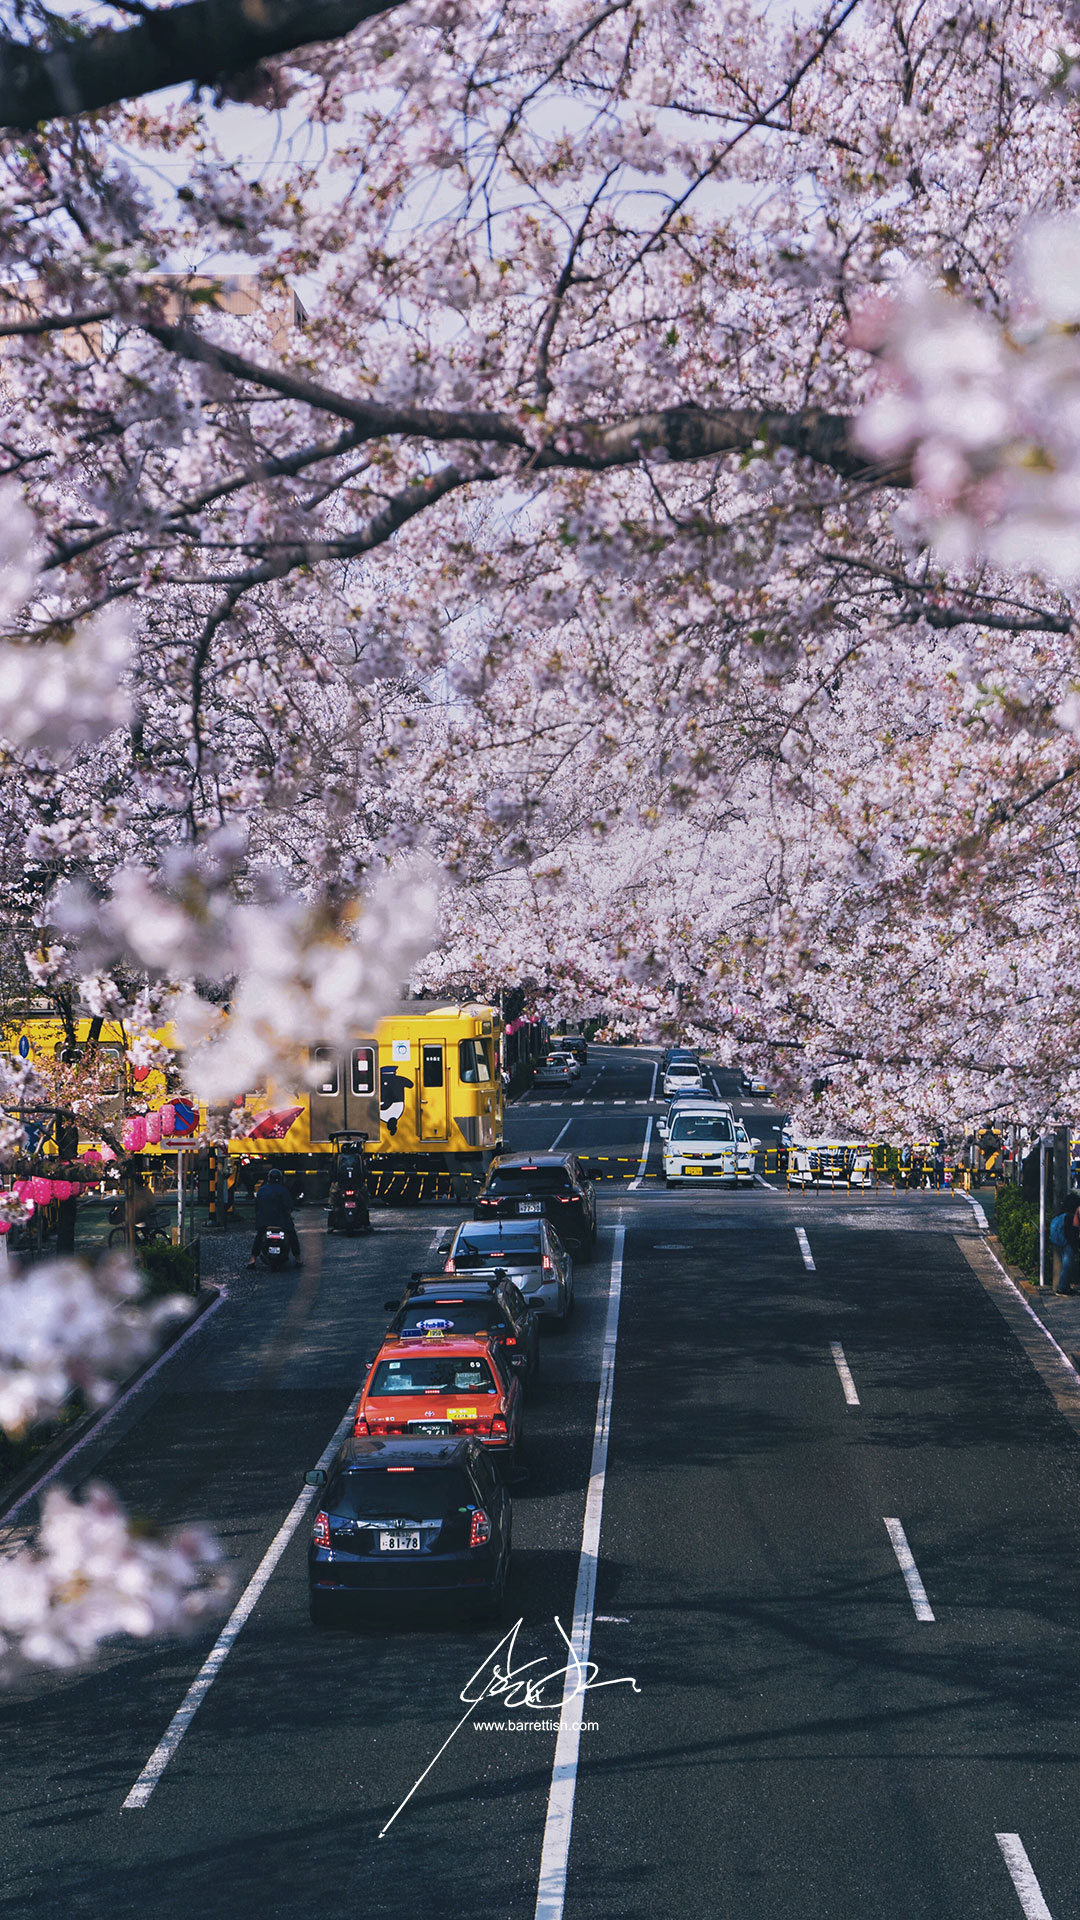 A train passes under cherry blossoms in Nakano, Tokyo   DOWNLOAD